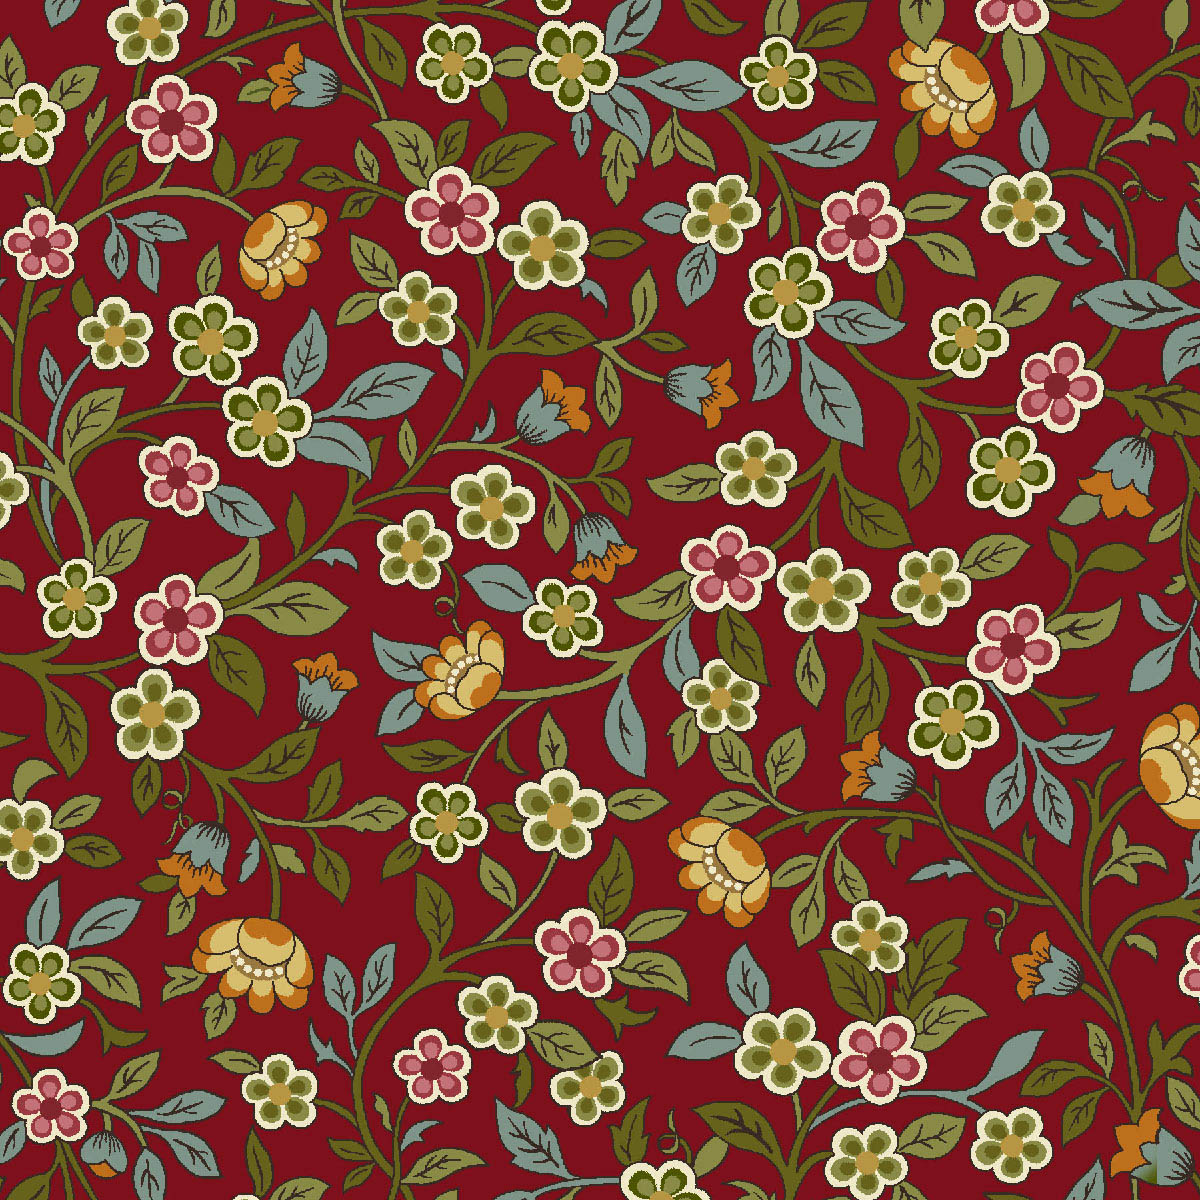 Exclusively Quilters Poetica 61304-1 red- small flowers & vines on red